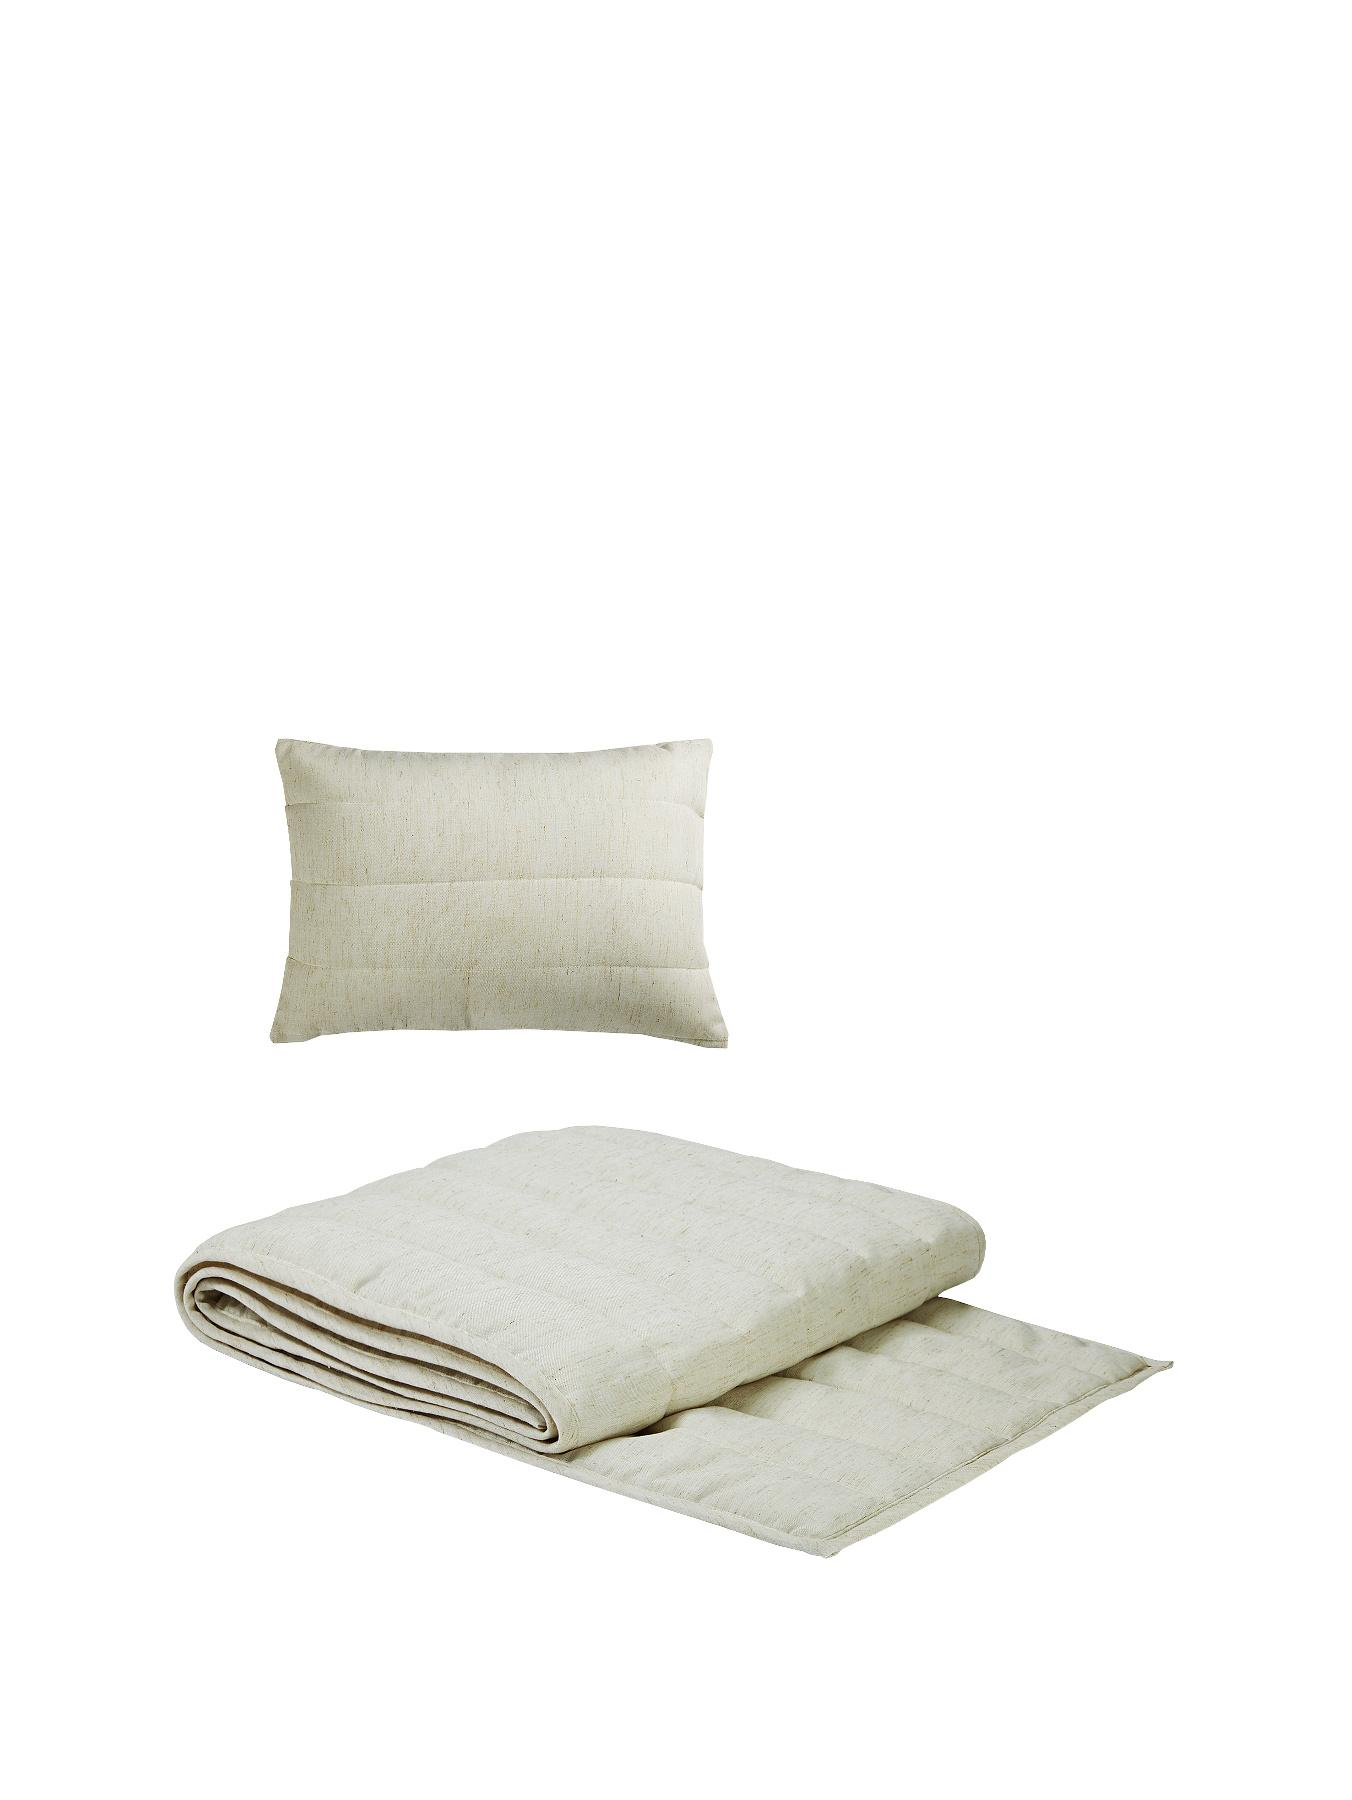 Hotel Collection Tranquility 200 Thread Count Runner and Pillow Accessory Pack